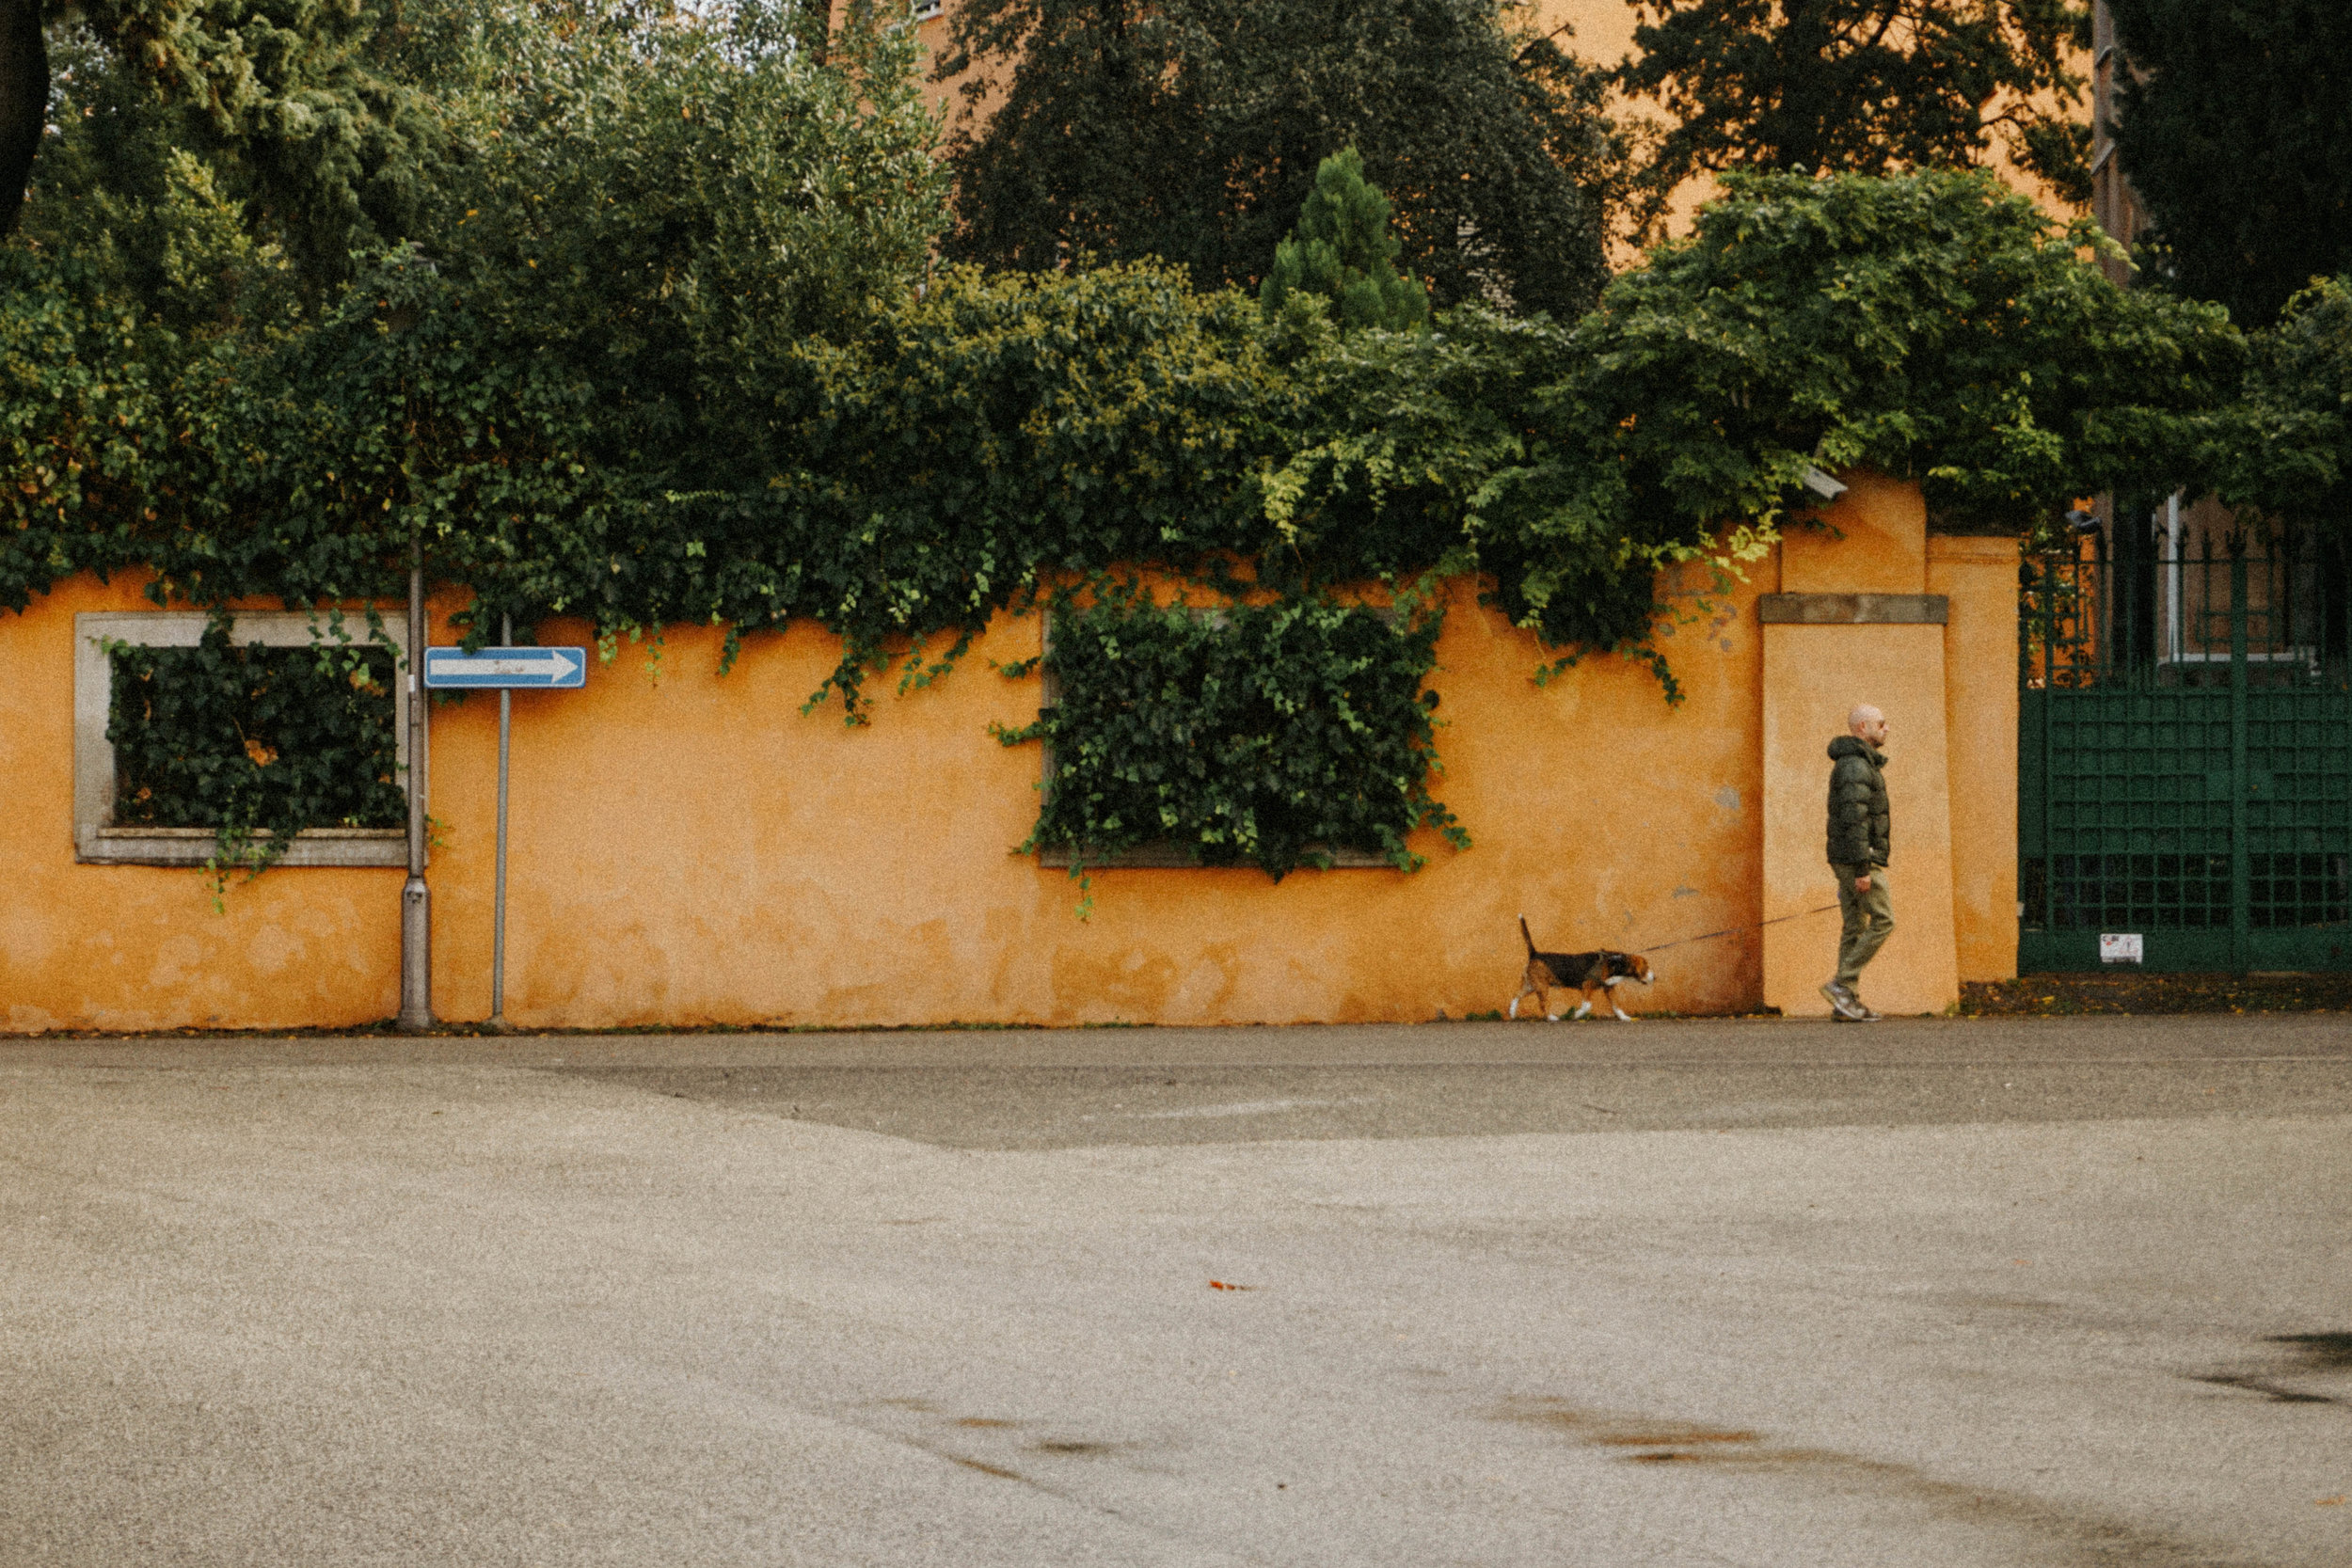 One of my favorite images from Rome. Dog-walker near Aventine Hill keyhole.